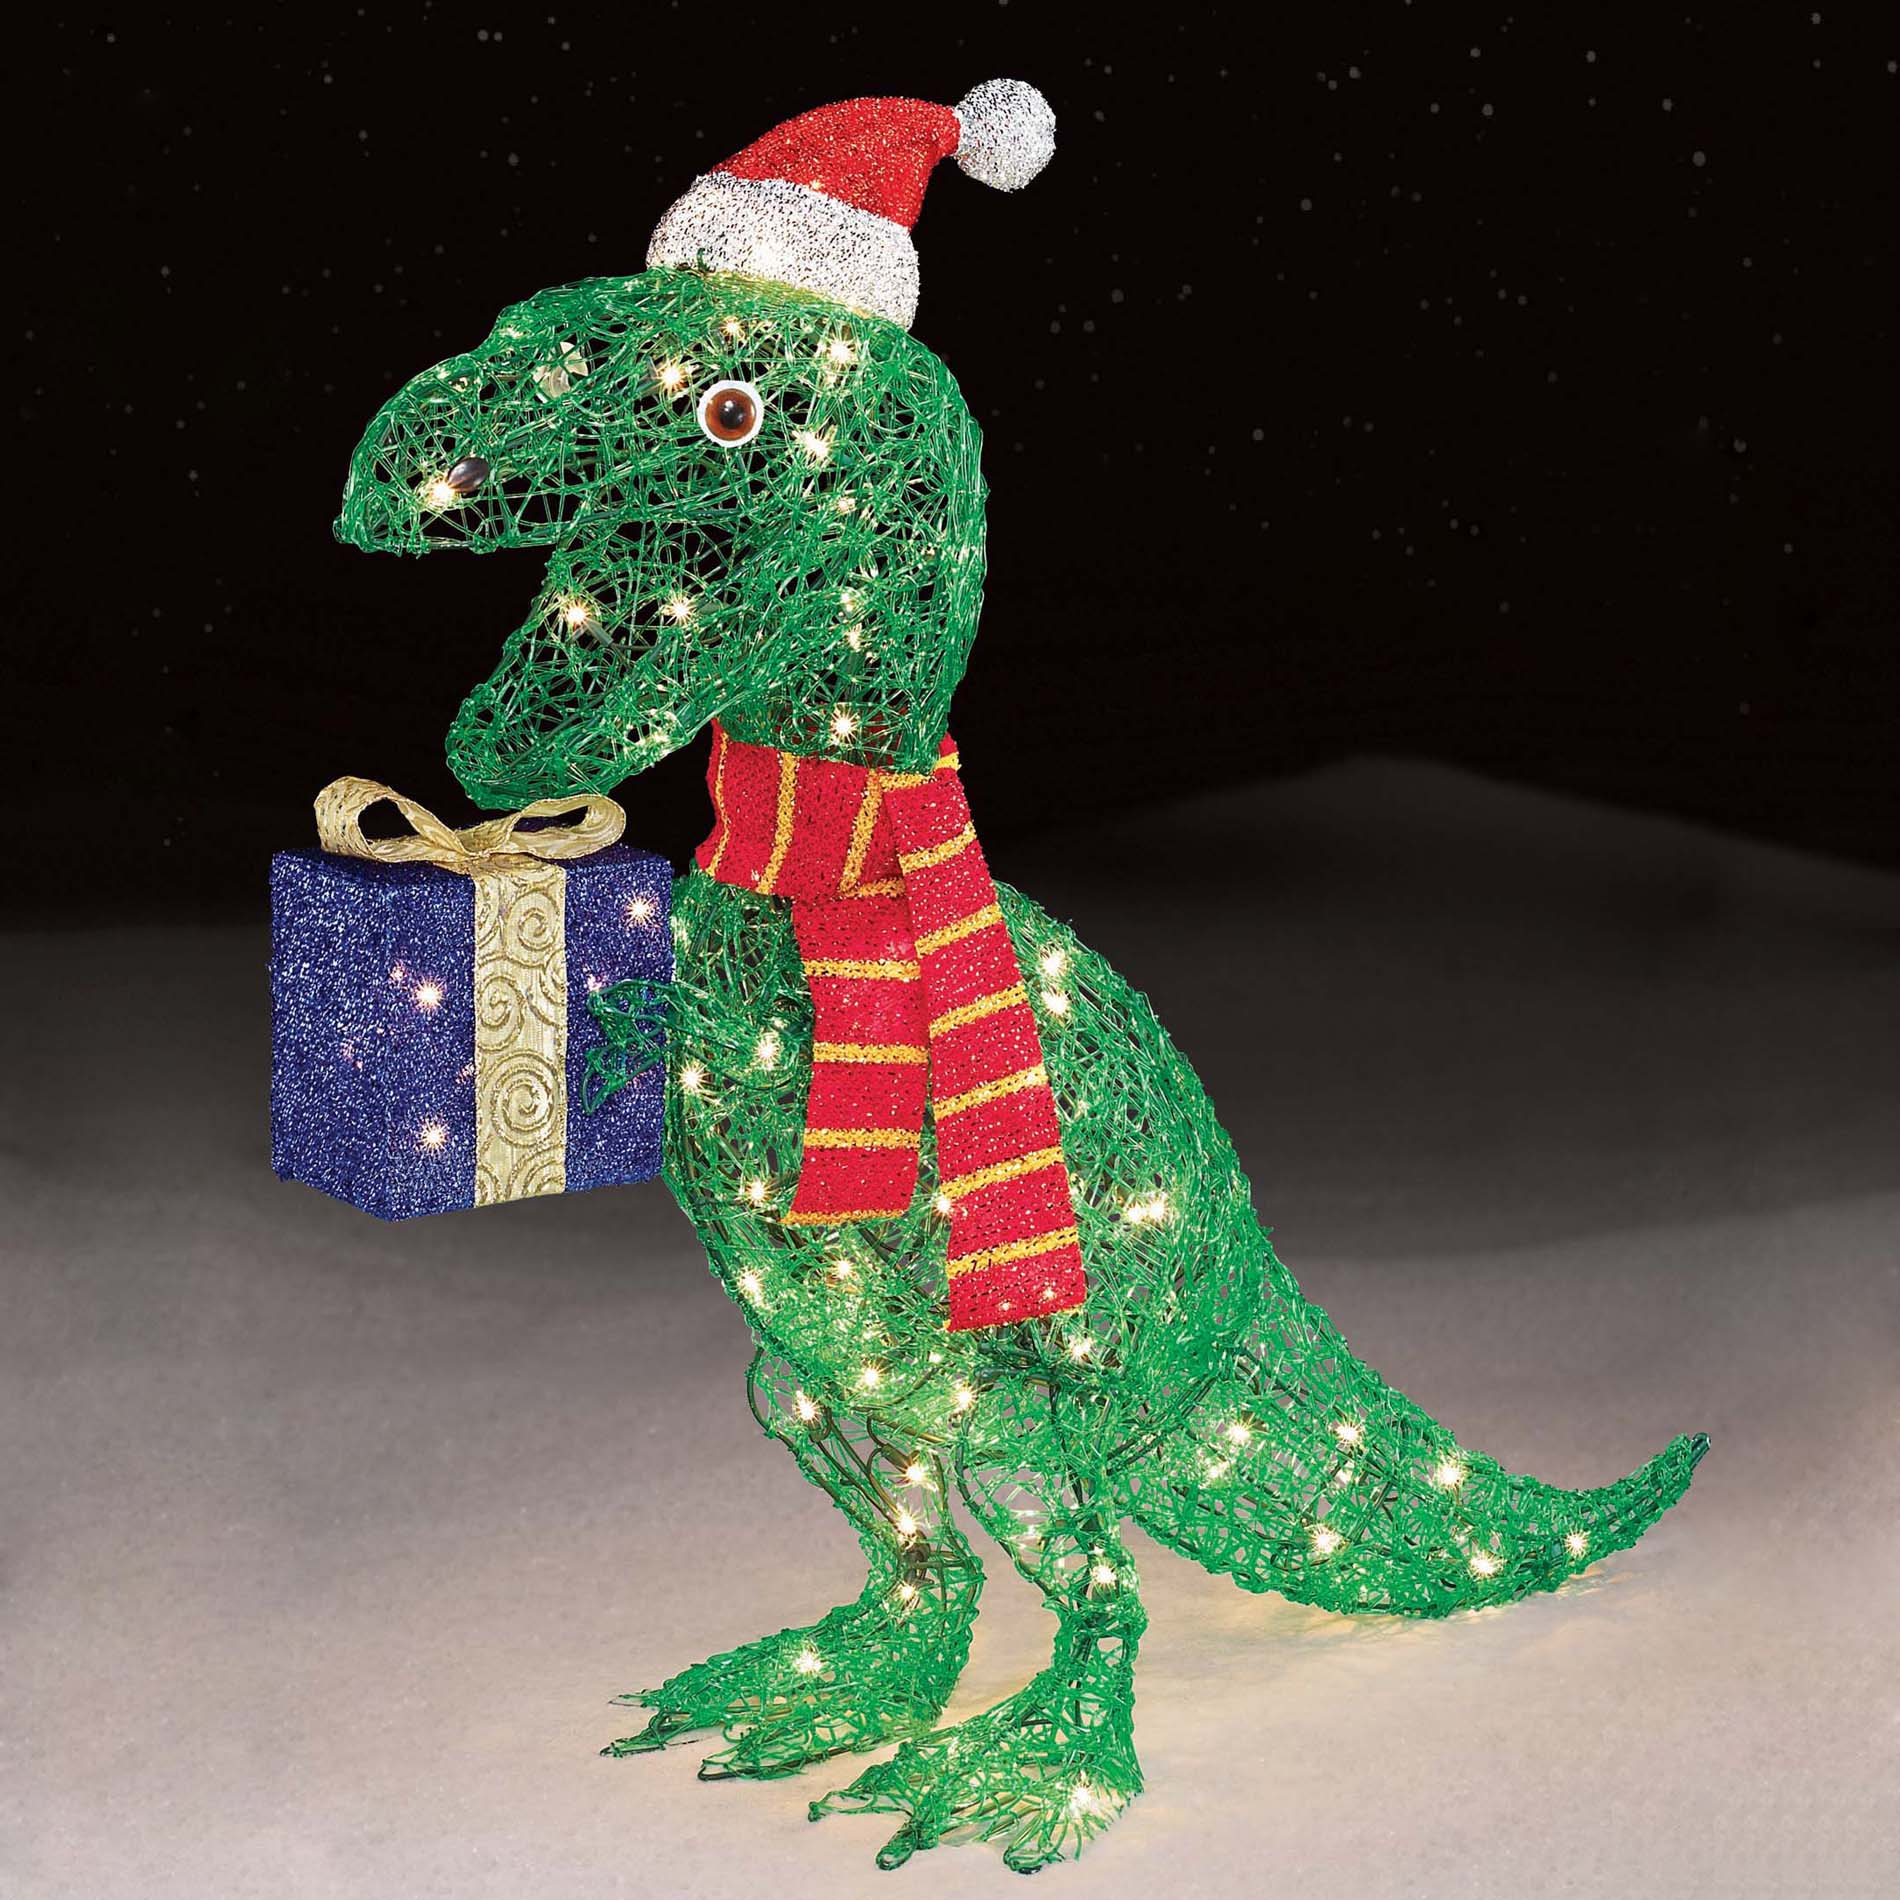 upc 029944538820 product image for trim a home 32 - Dinosaur Christmas Decorations